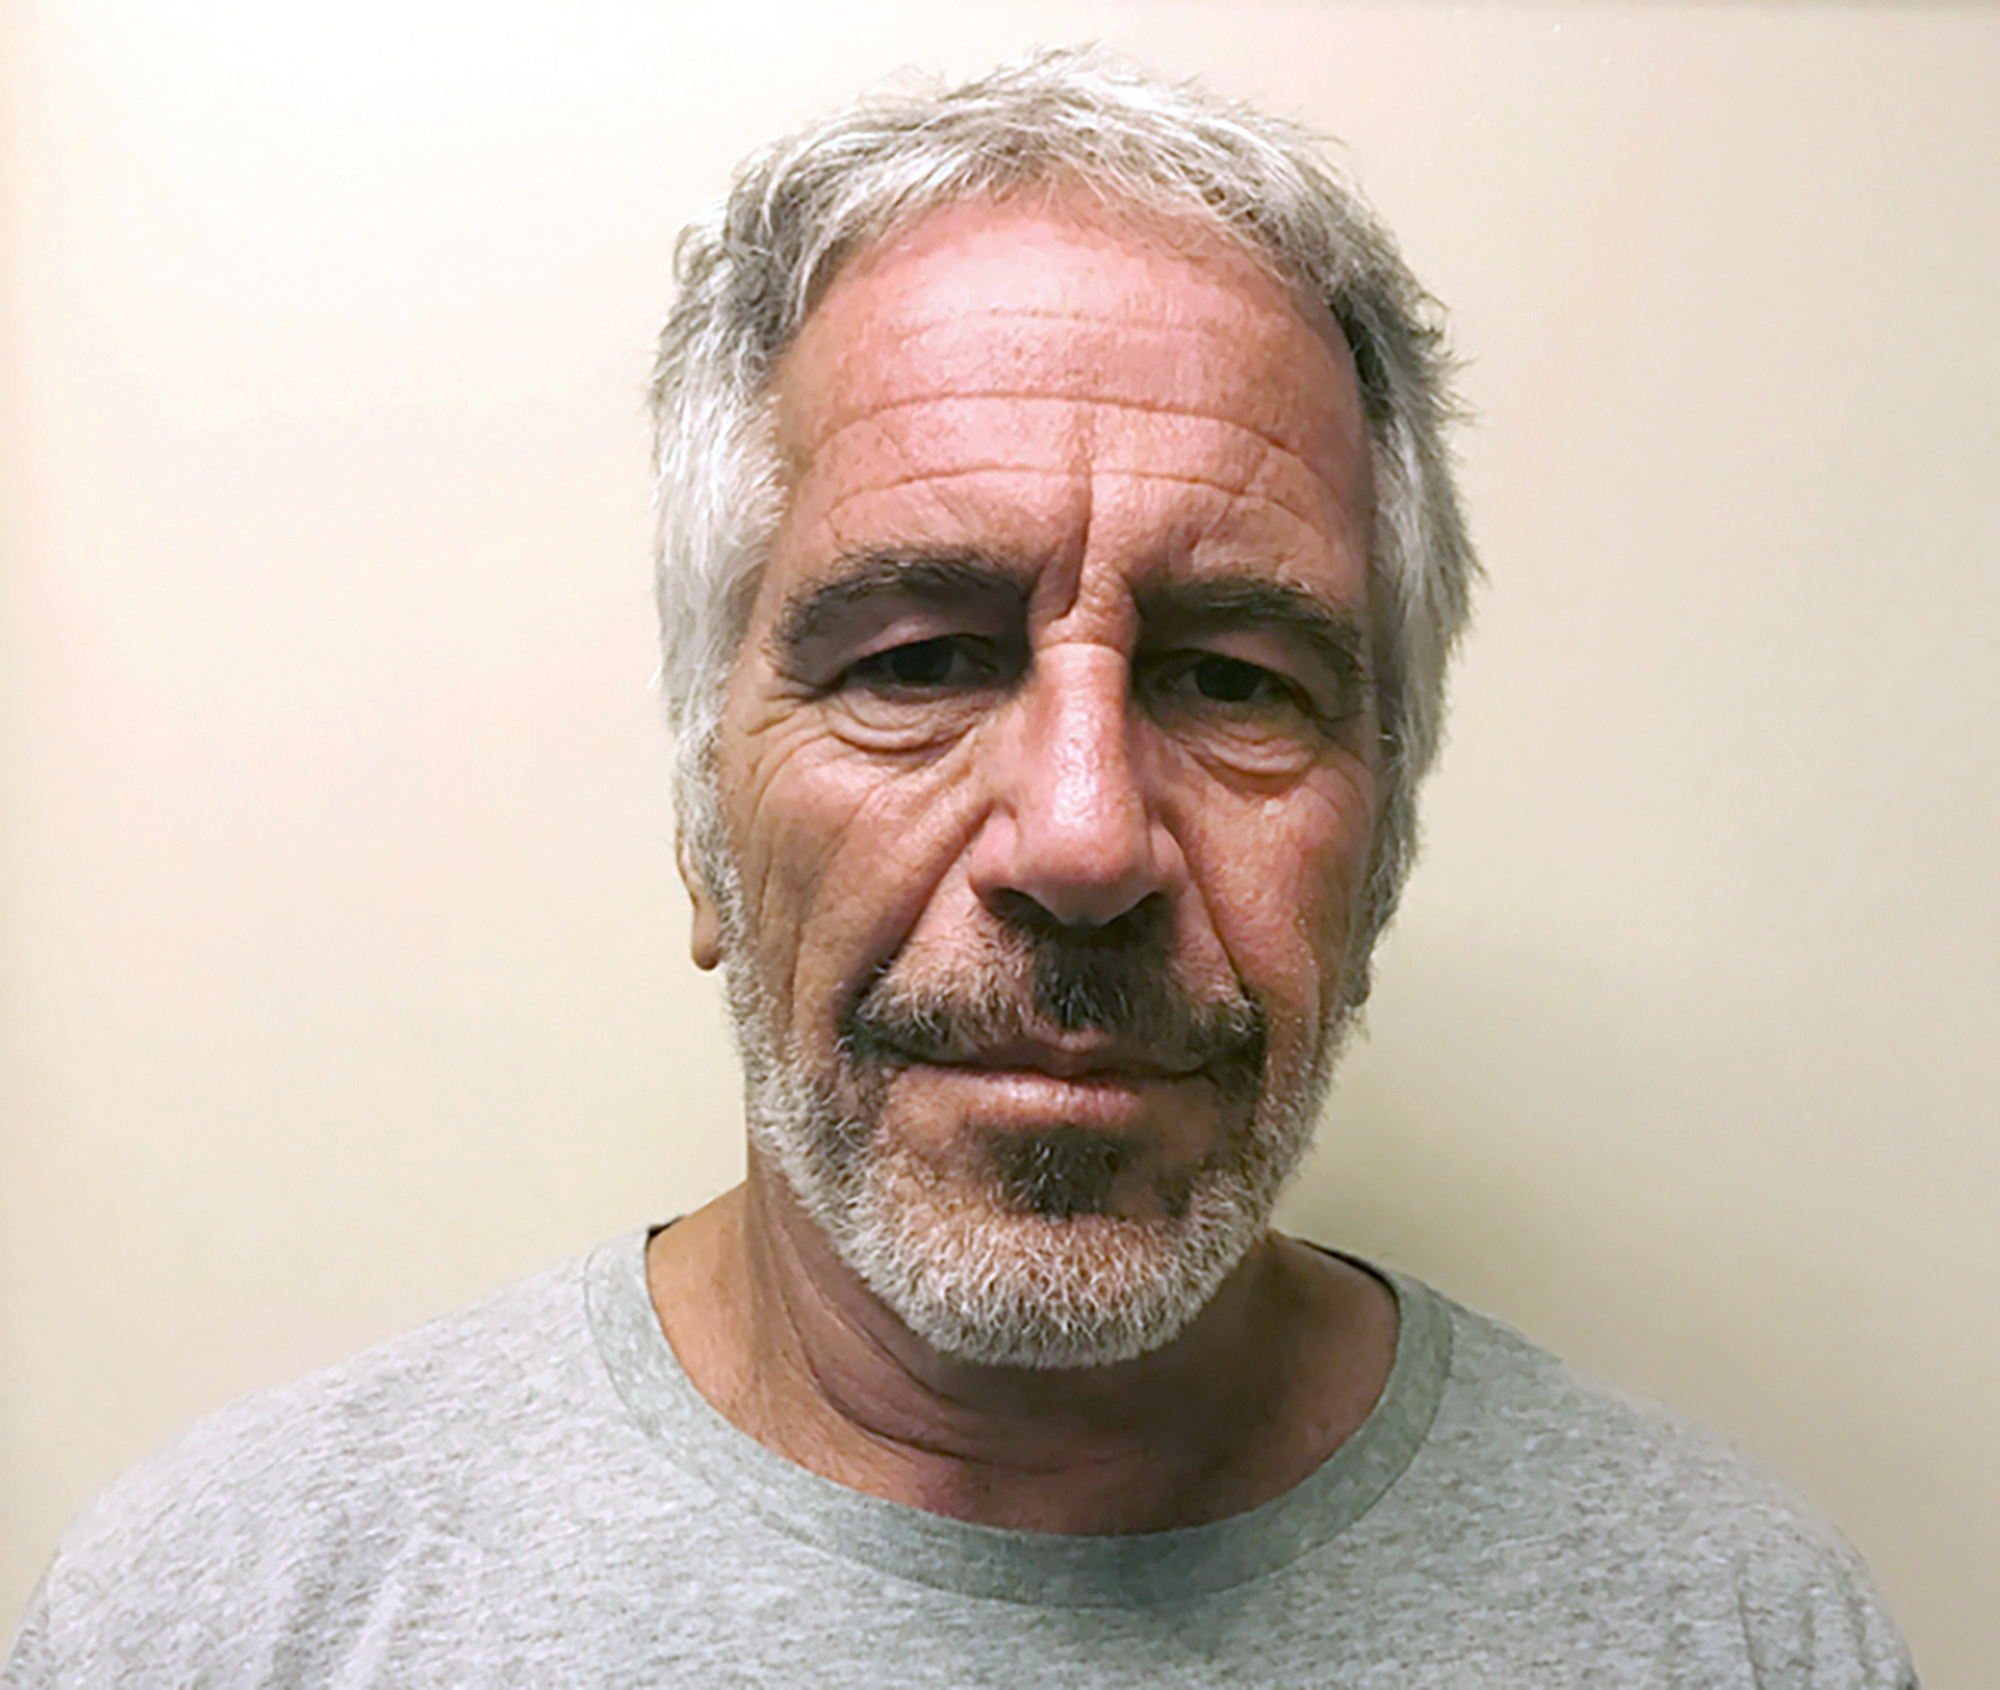 Jeffrey Epstein's demise was not at his own hands